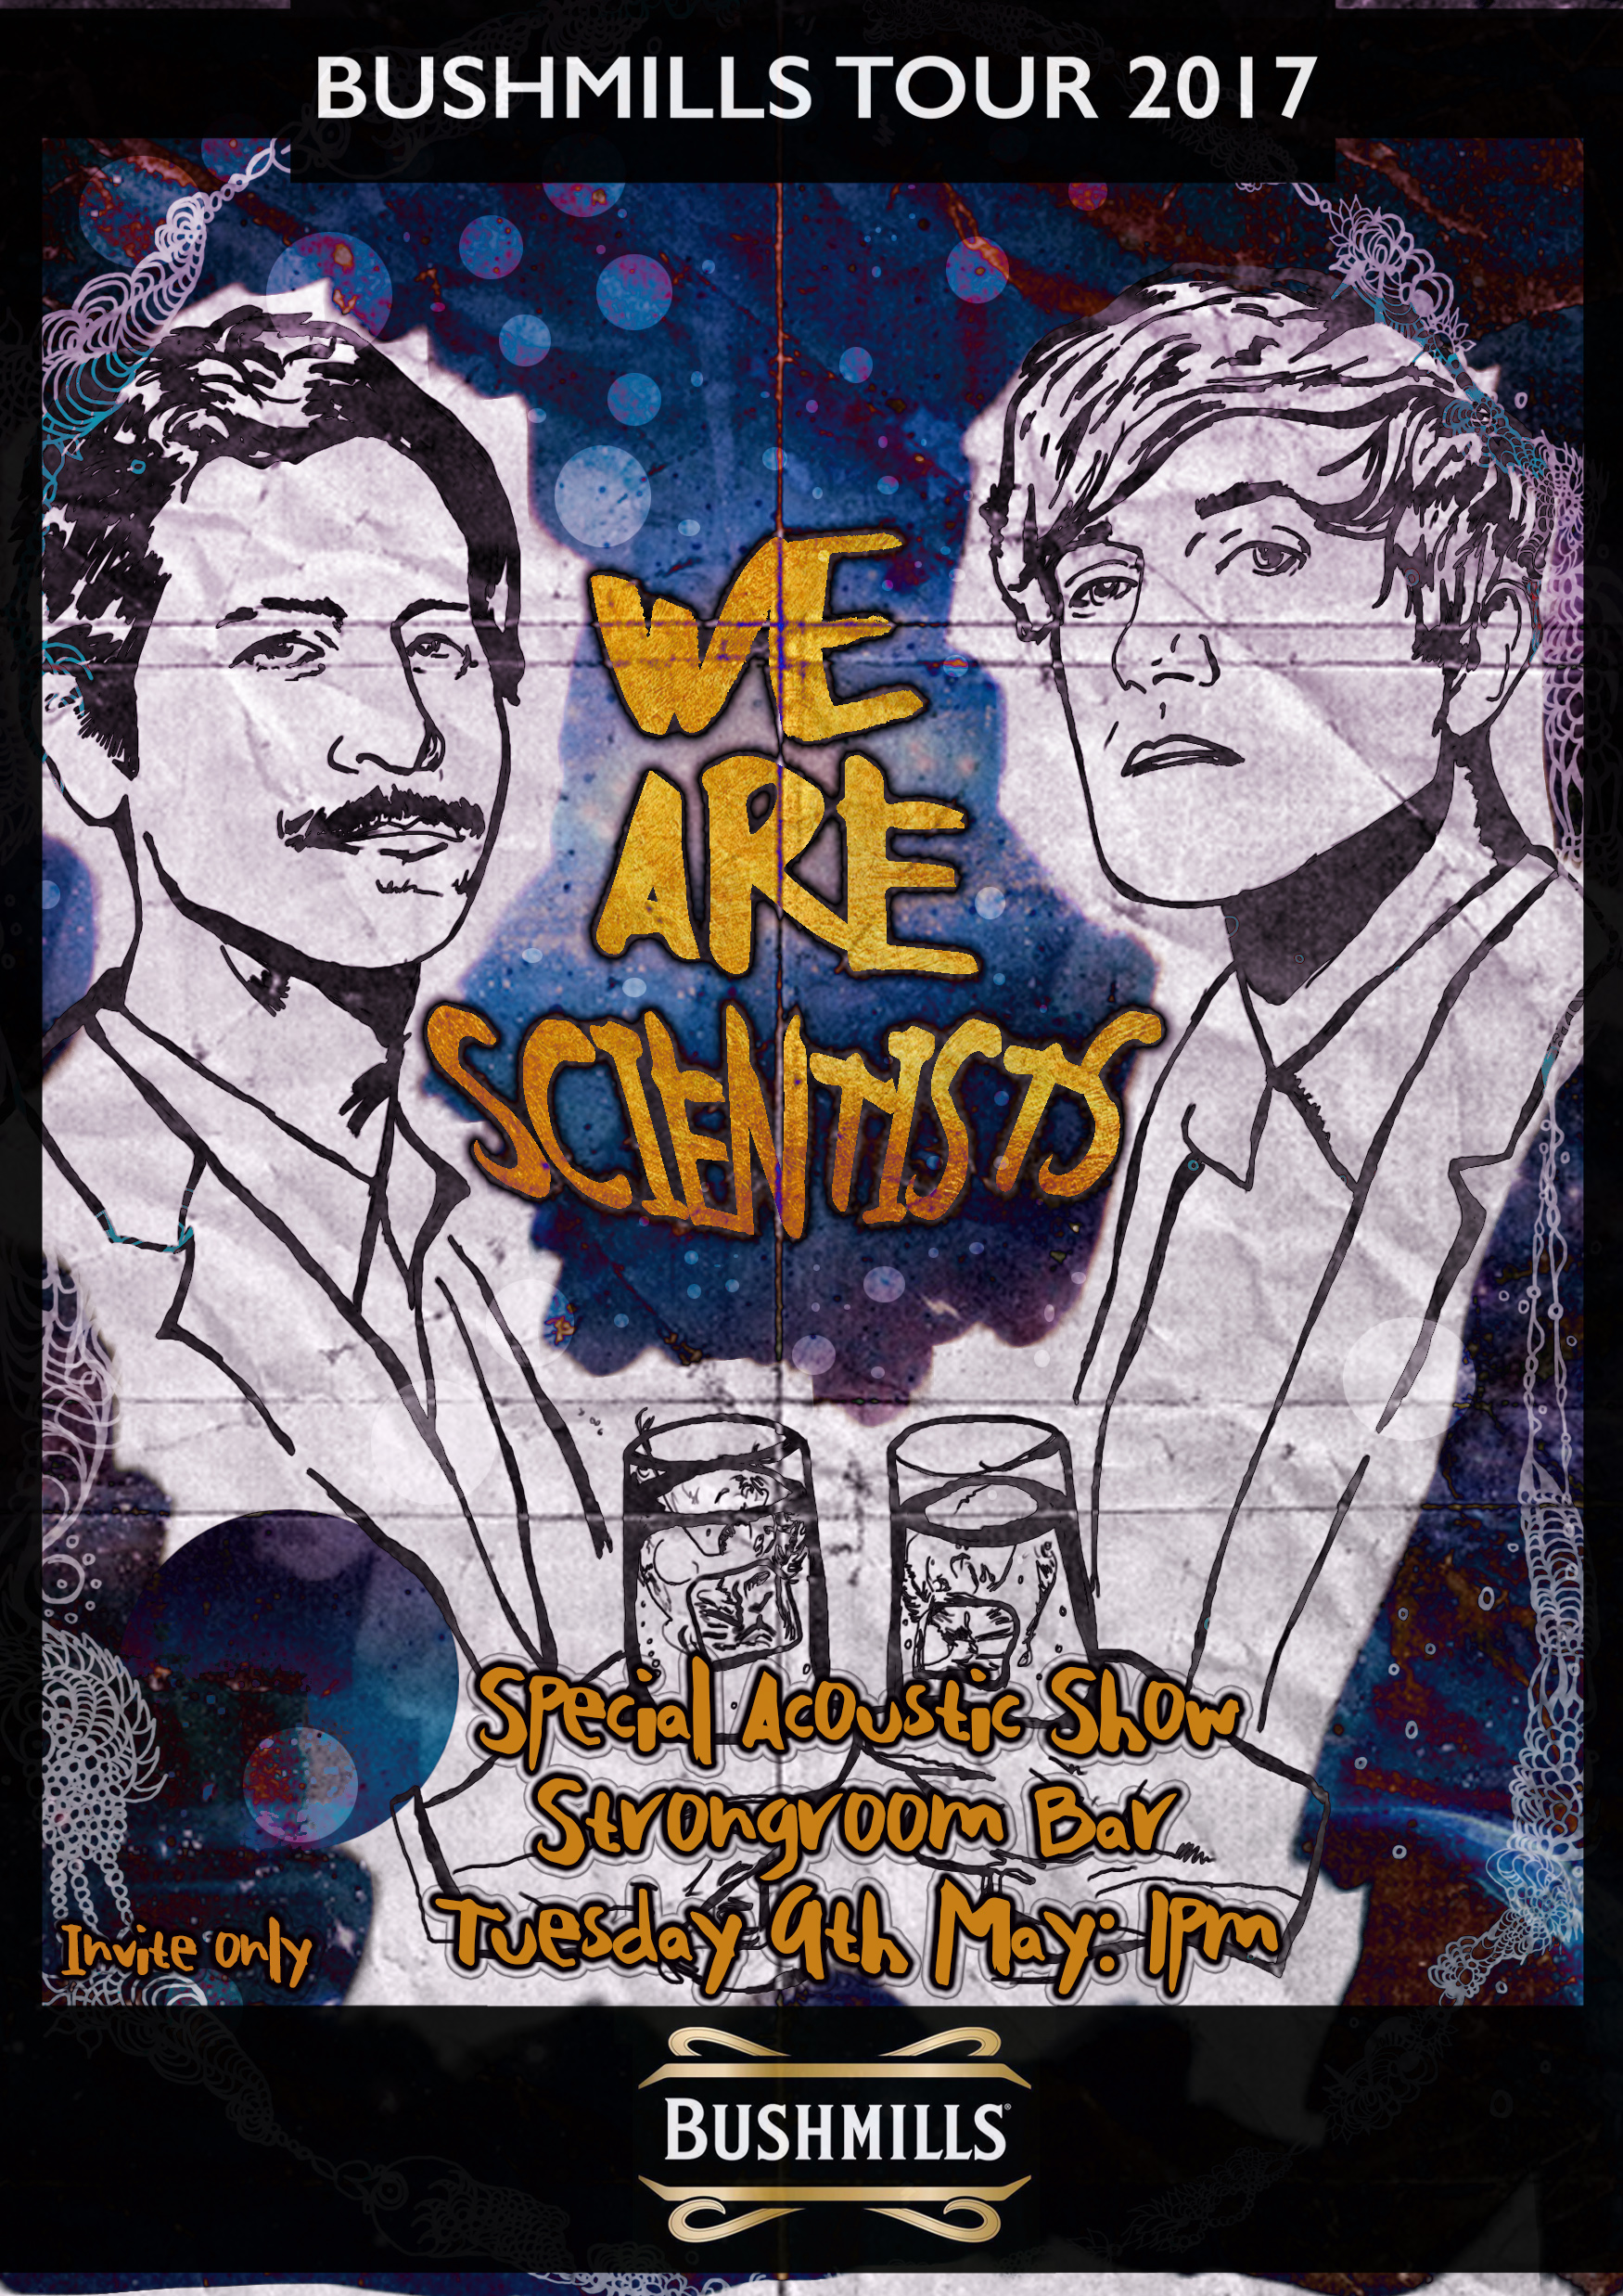 We Are Scientists poster